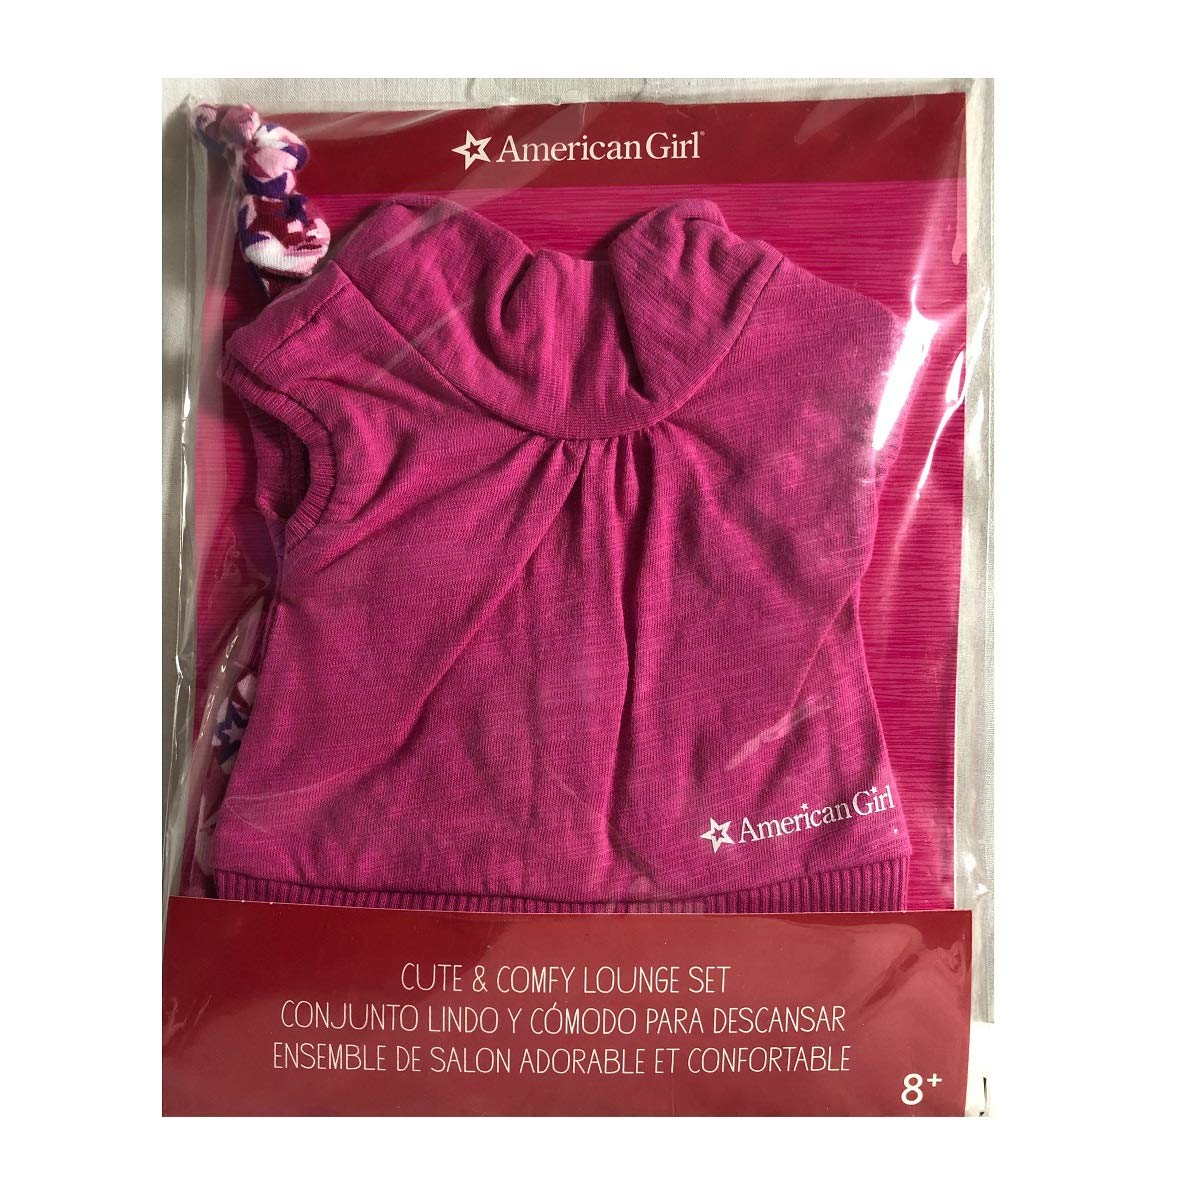 American Girl Truly Me Cute /& Comfy Lounge Set for 18 Dolls Doll Not Included